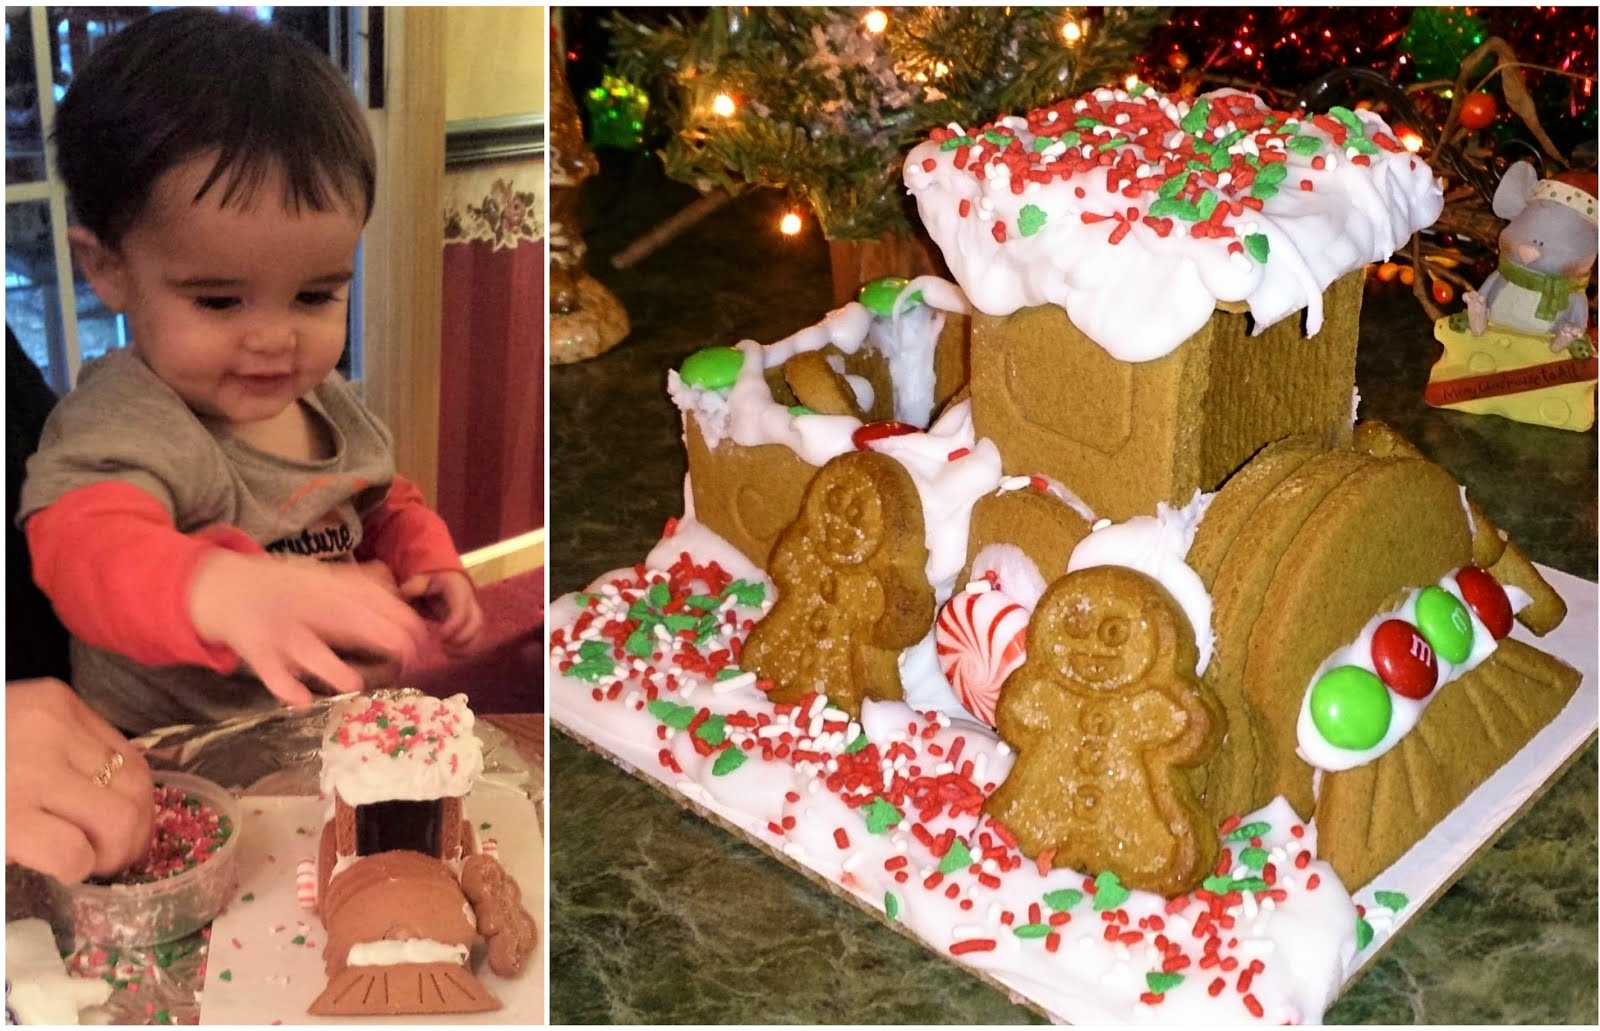 My Cousin Josiah's Gingerbread Train - December 2016